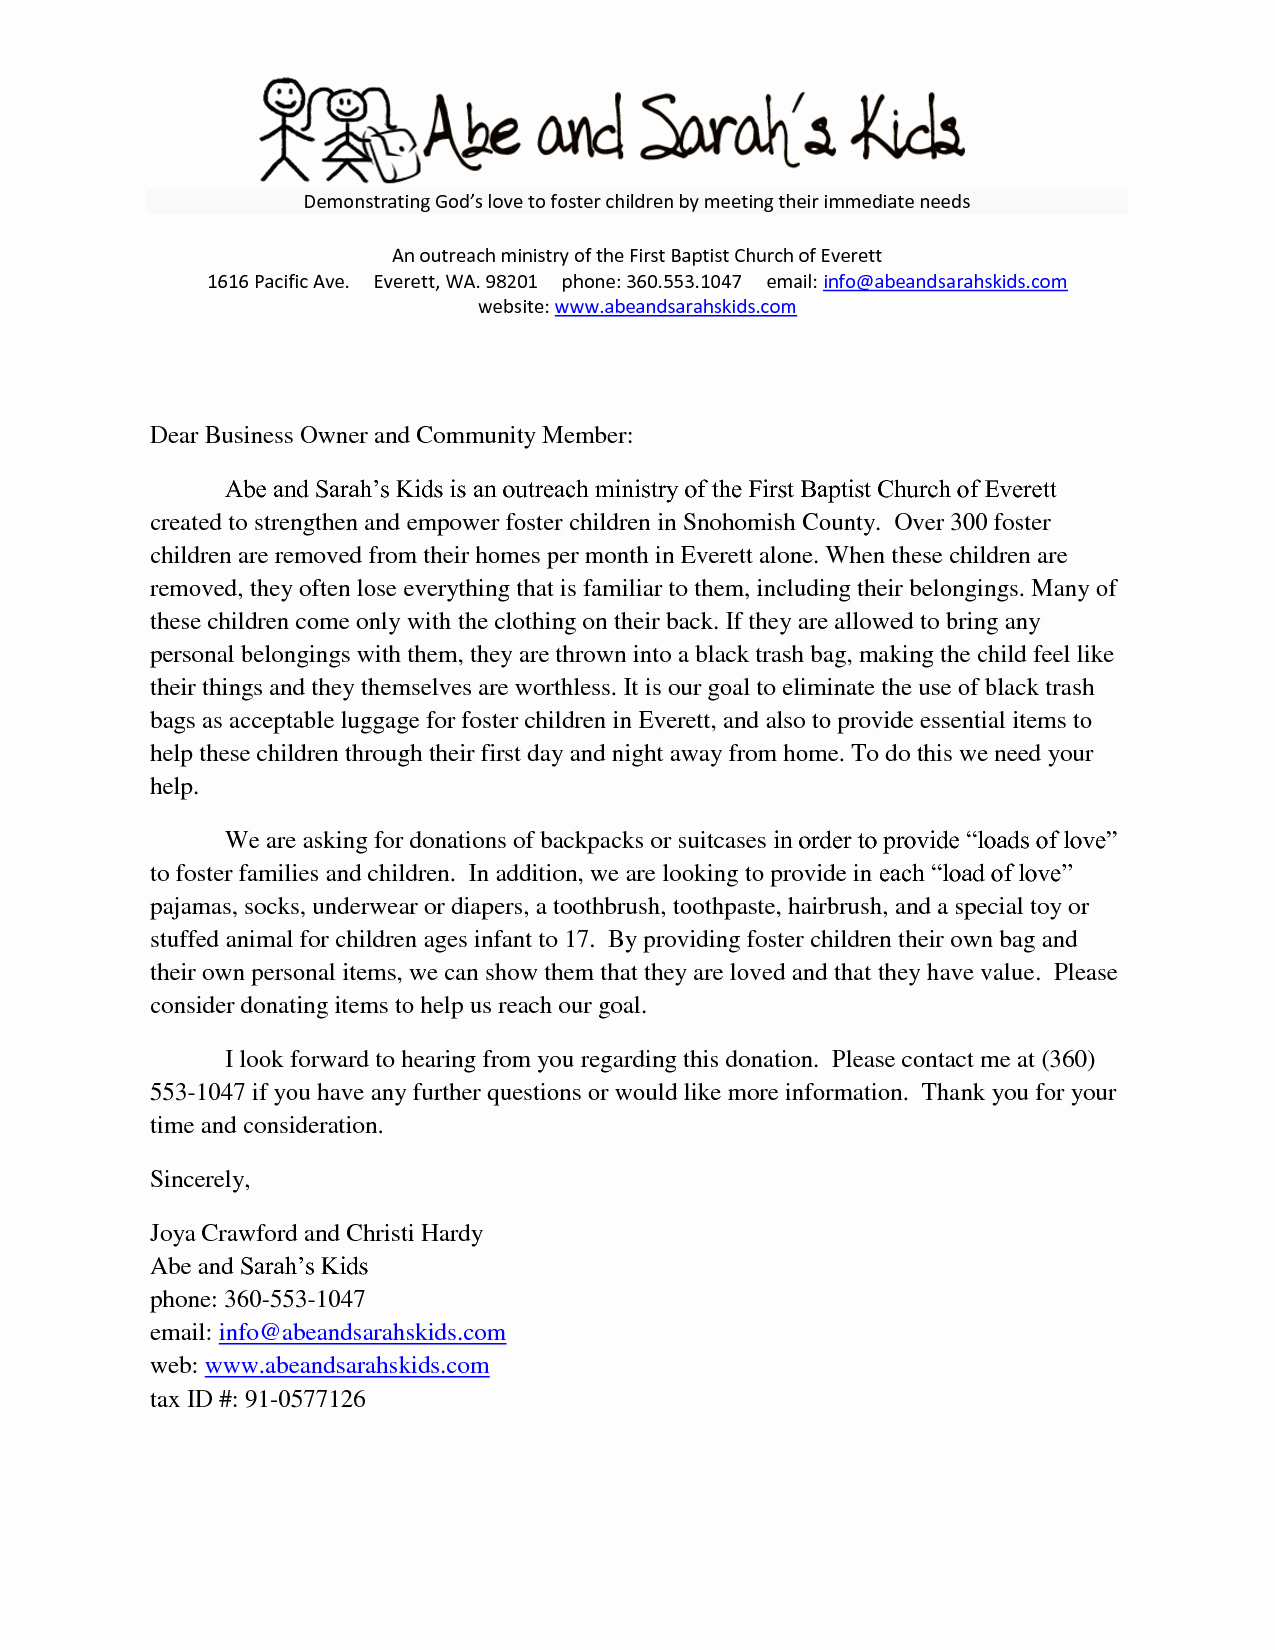 Sample Fundraising Letter for Mission Trip Beautiful Sample Church Donation Letter